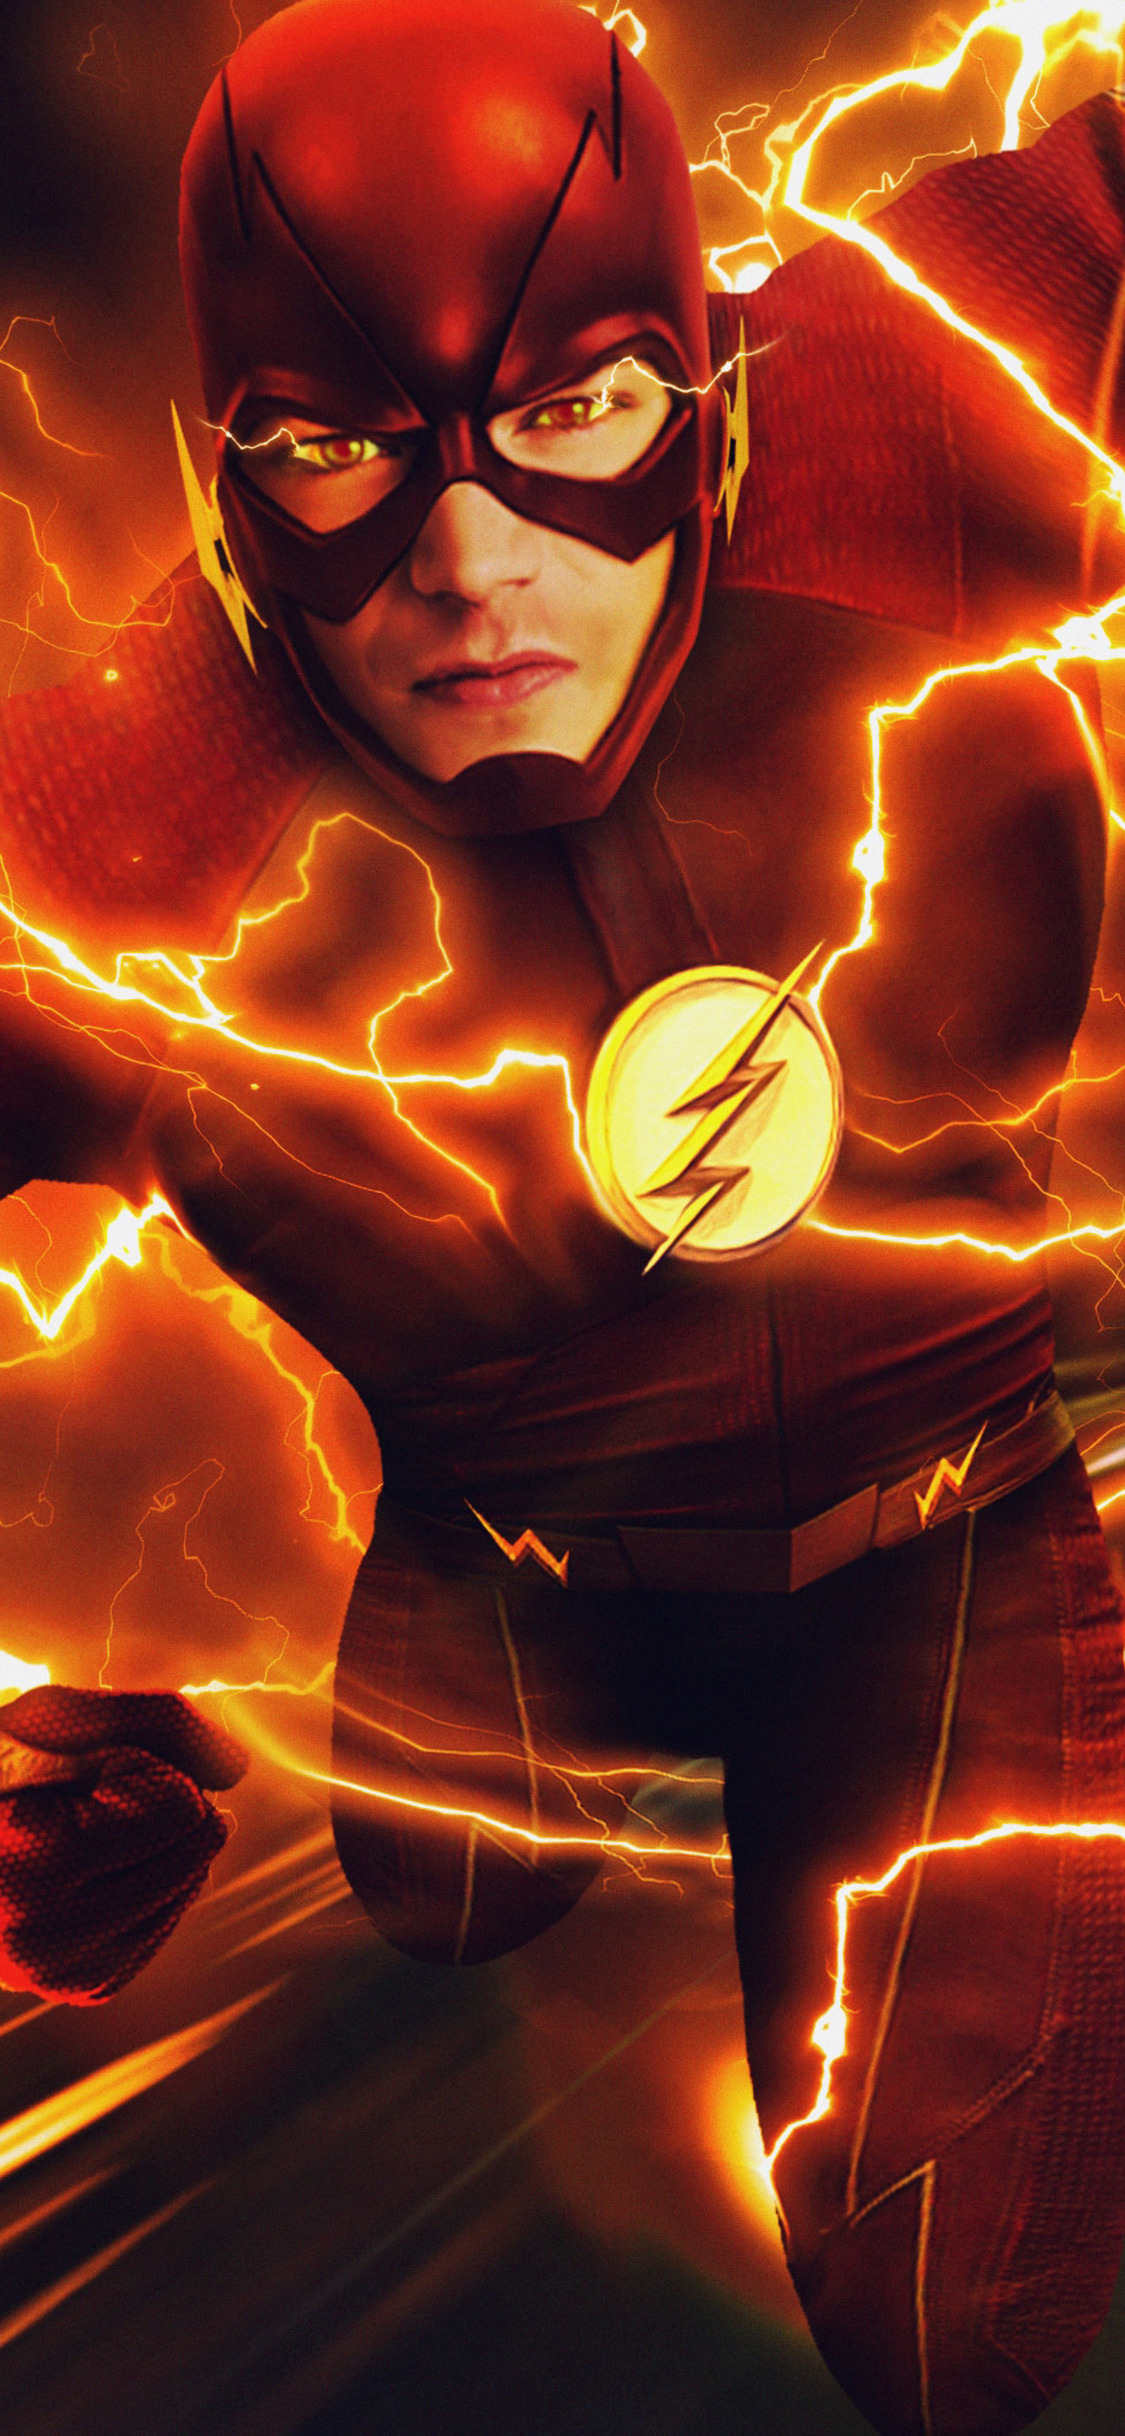 blue flash wallpaper, the flash hd